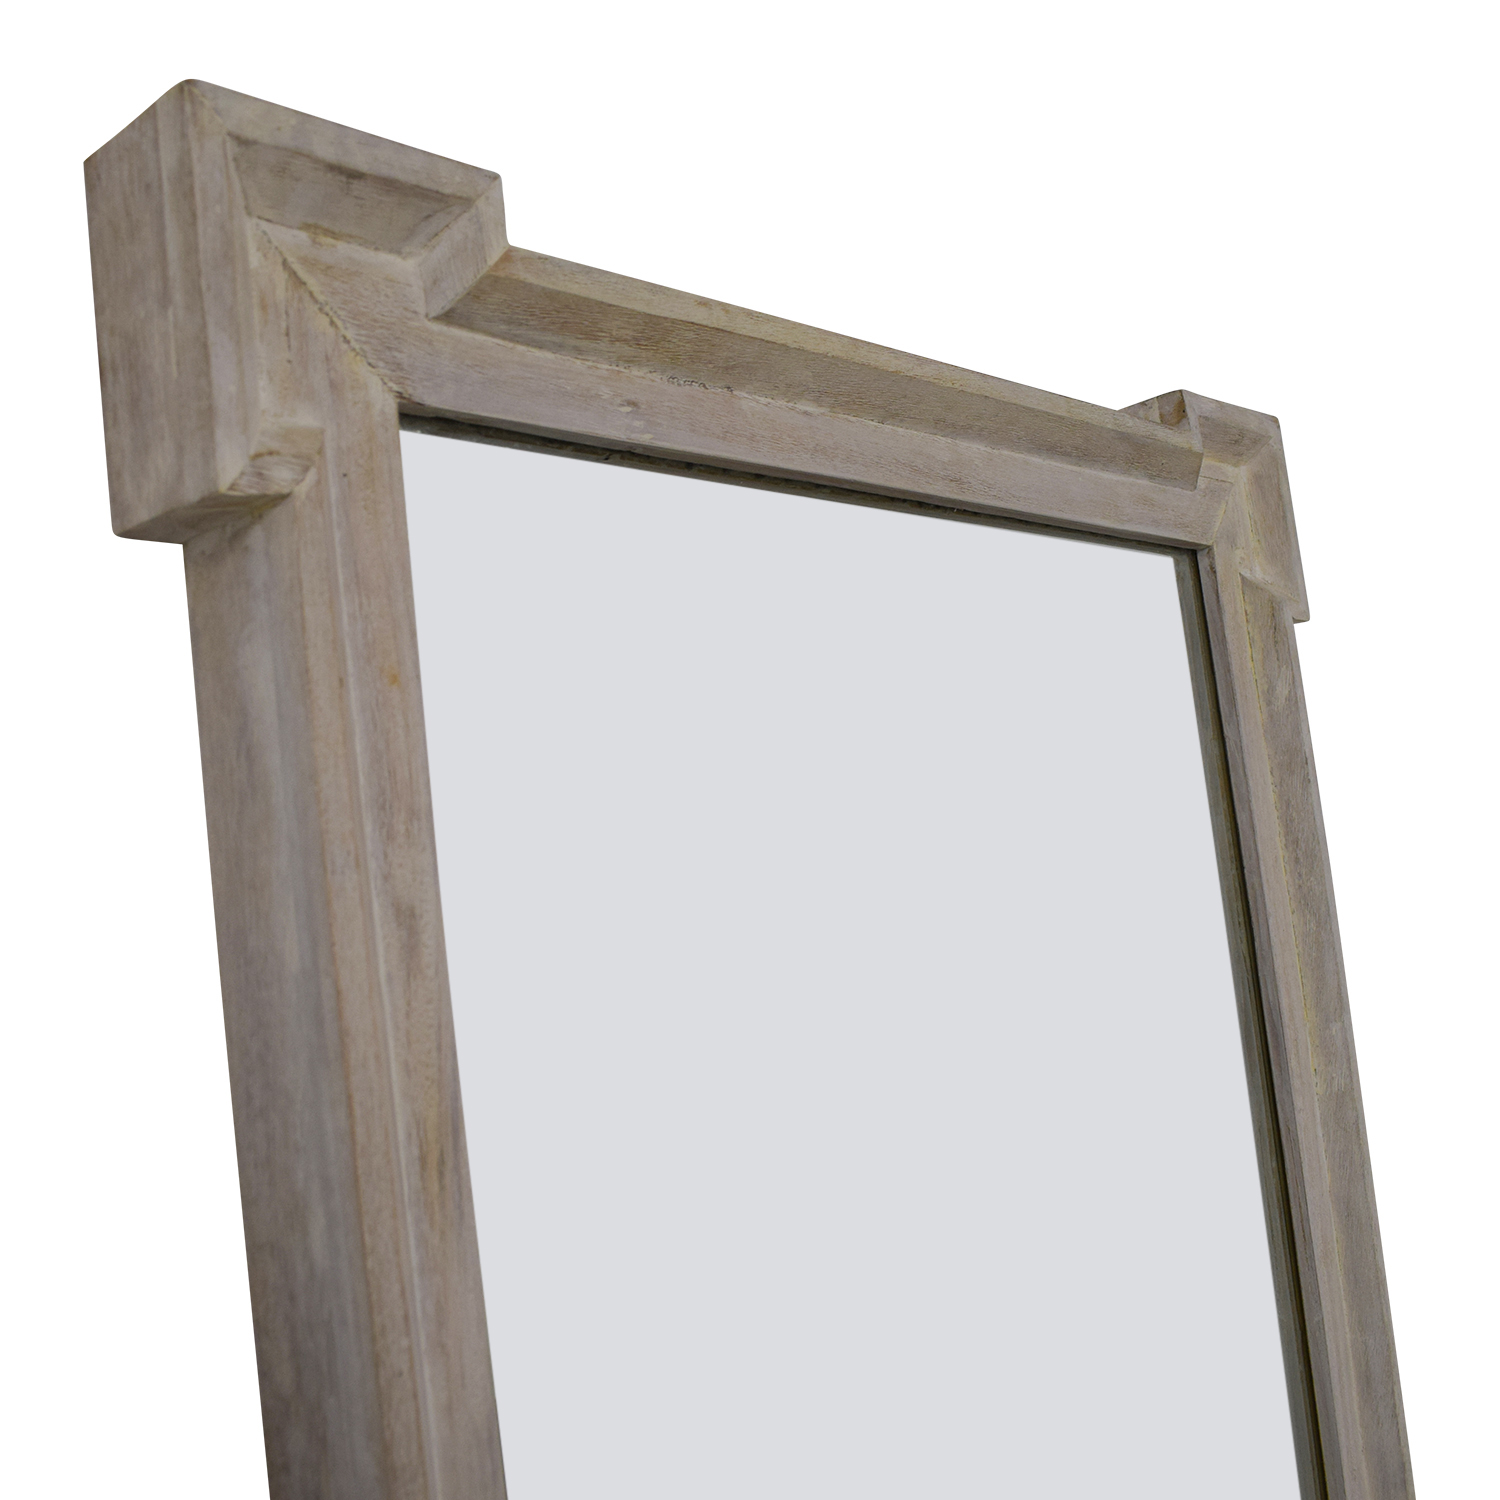 68% OFF - West Elm West Elm Cornerstone Floor Mirror / Decor